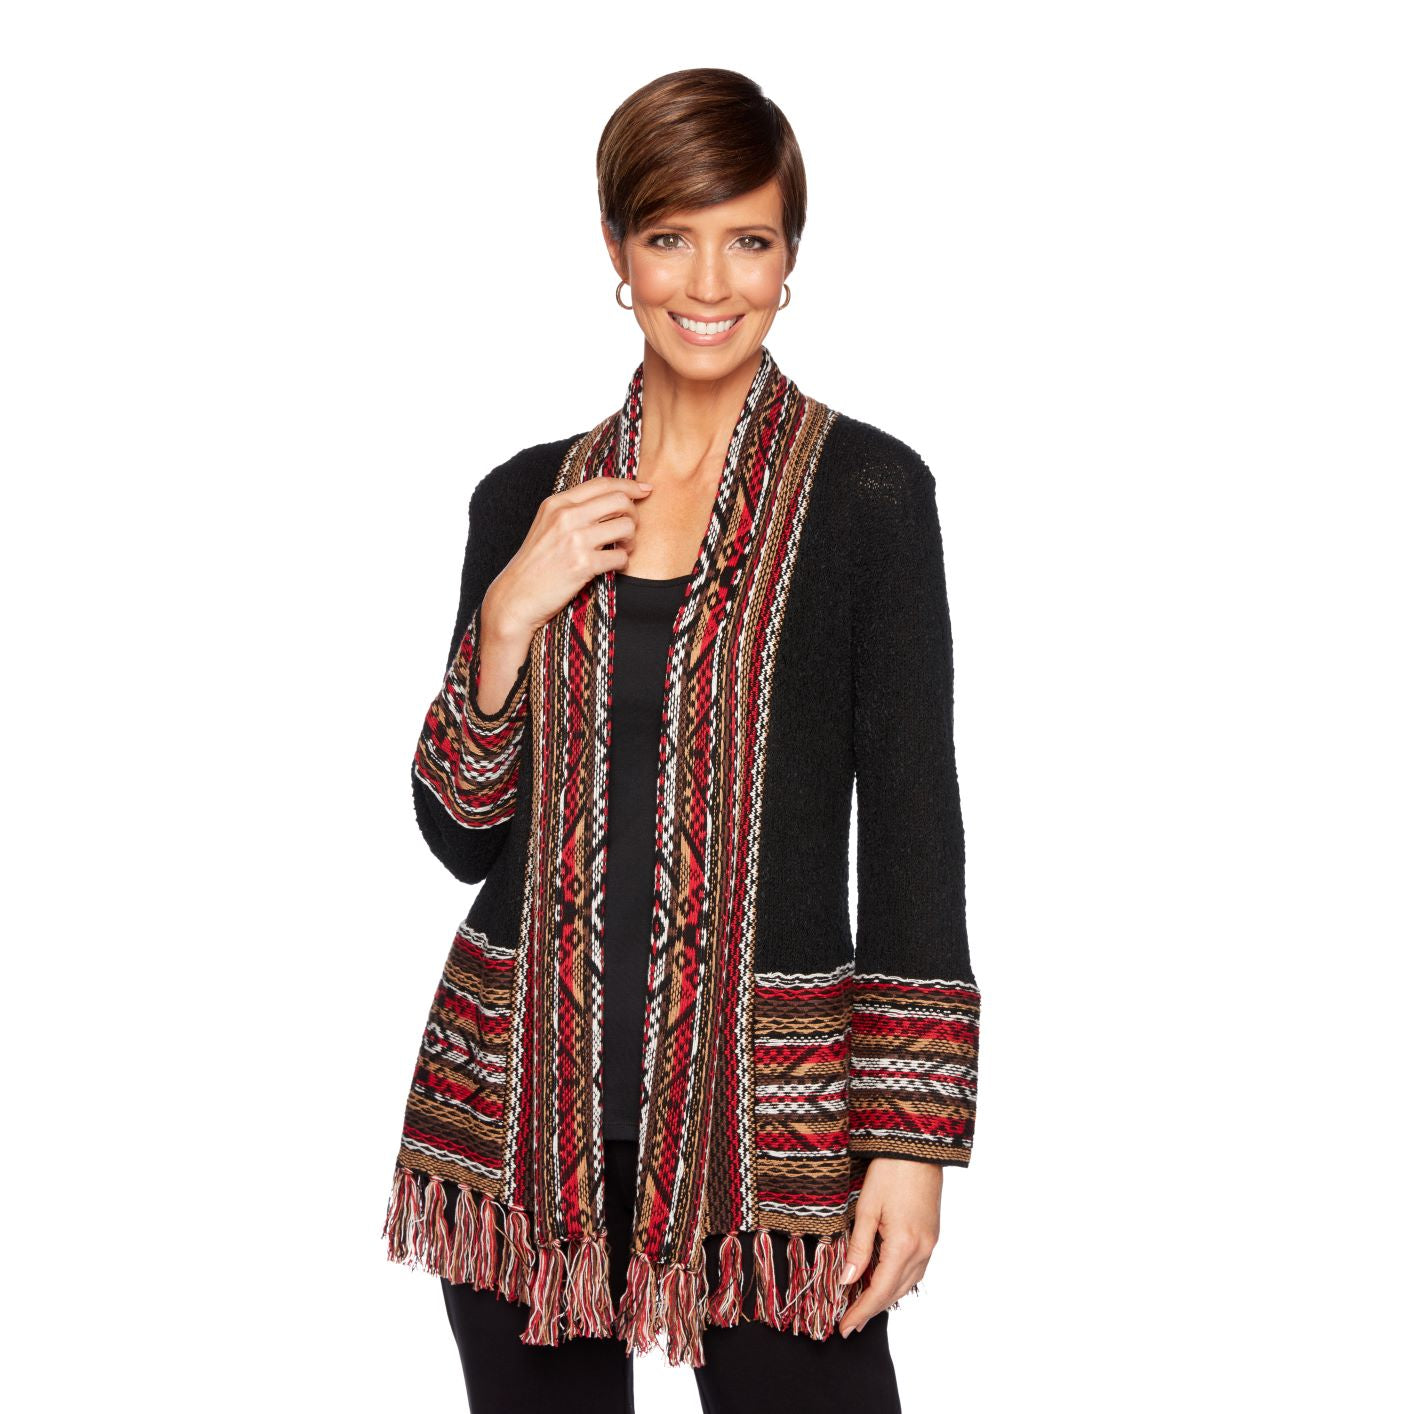 'Ruby Road' 37164 D7 969 - Women's Cardigan w/Fringe - Black / Multi